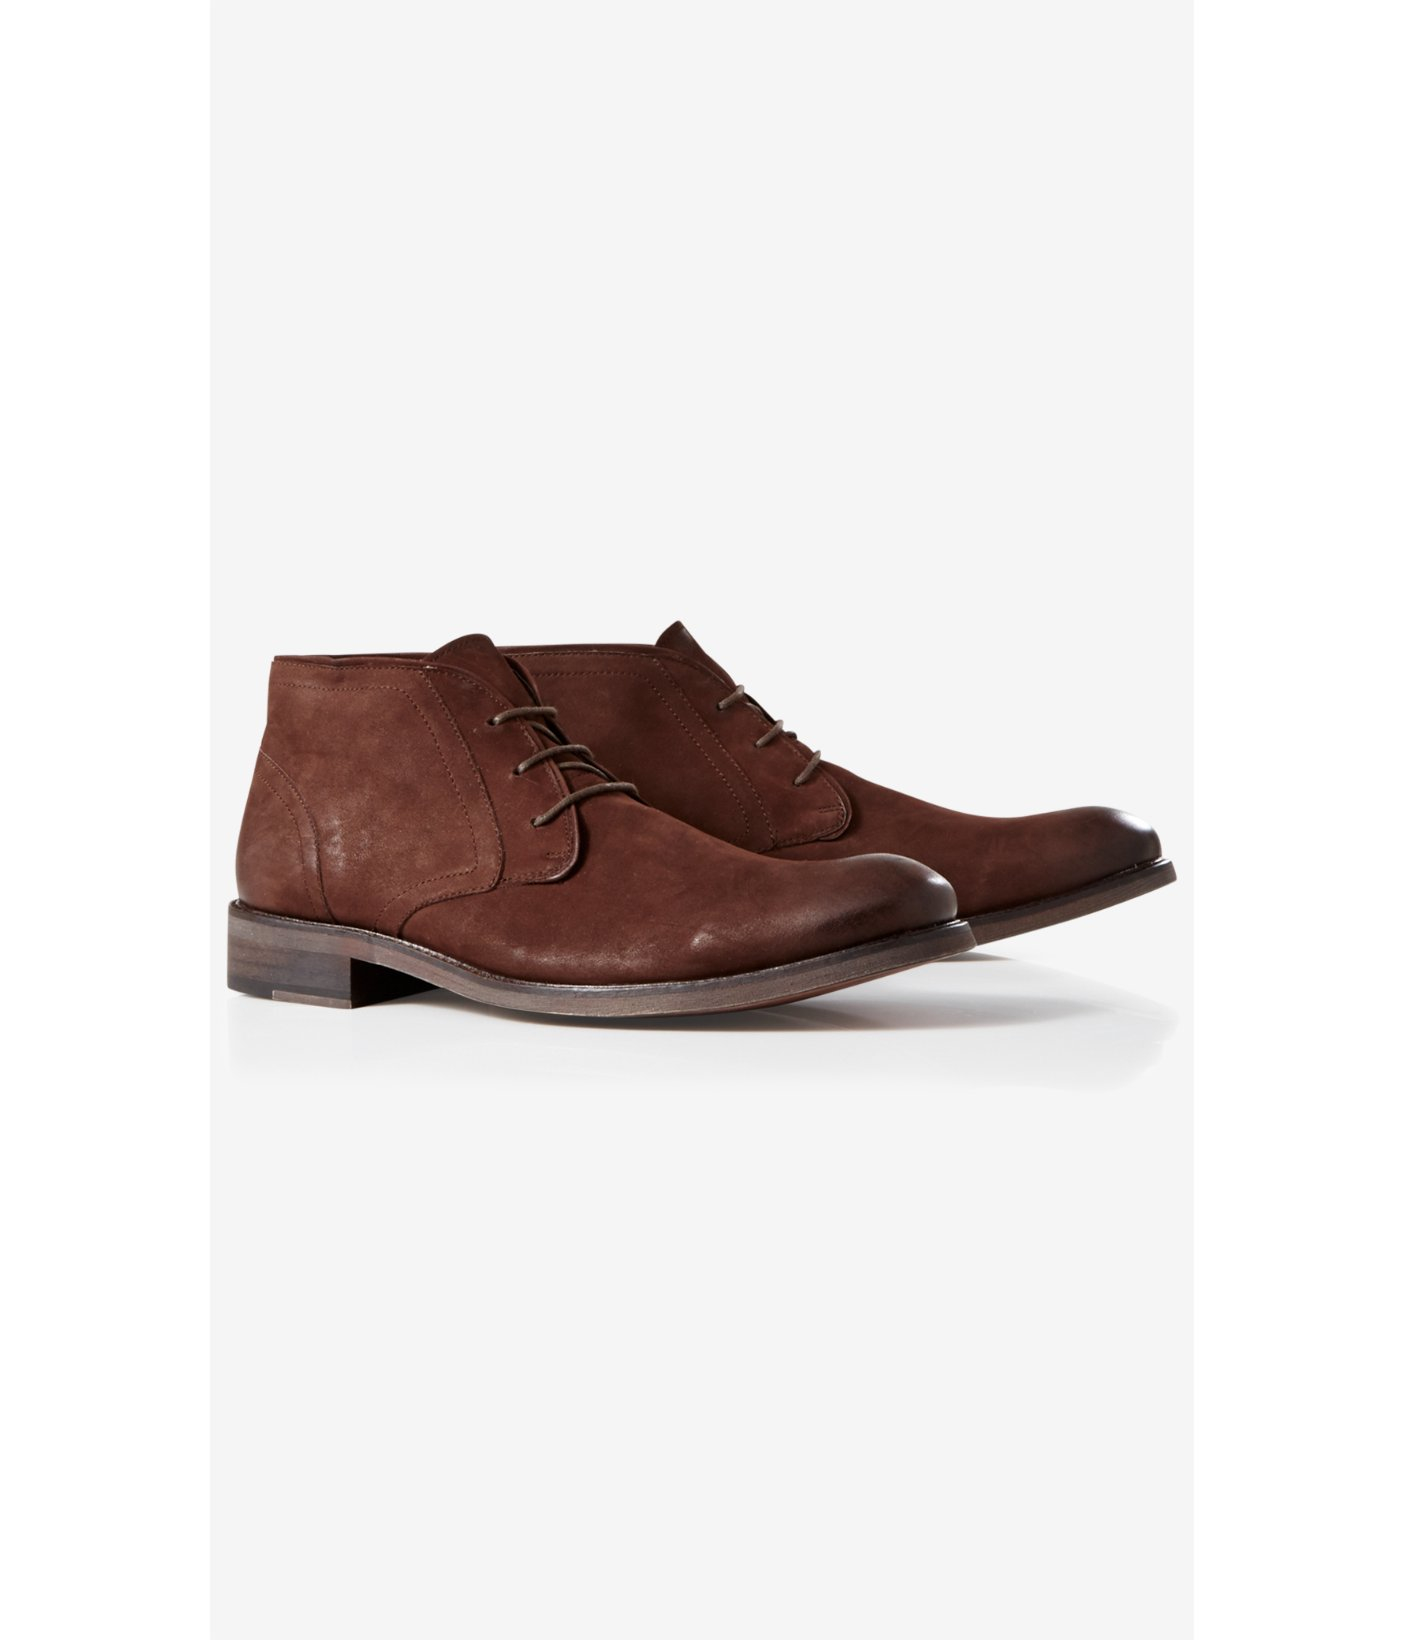 express brown suede chukka boot in brown for lyst